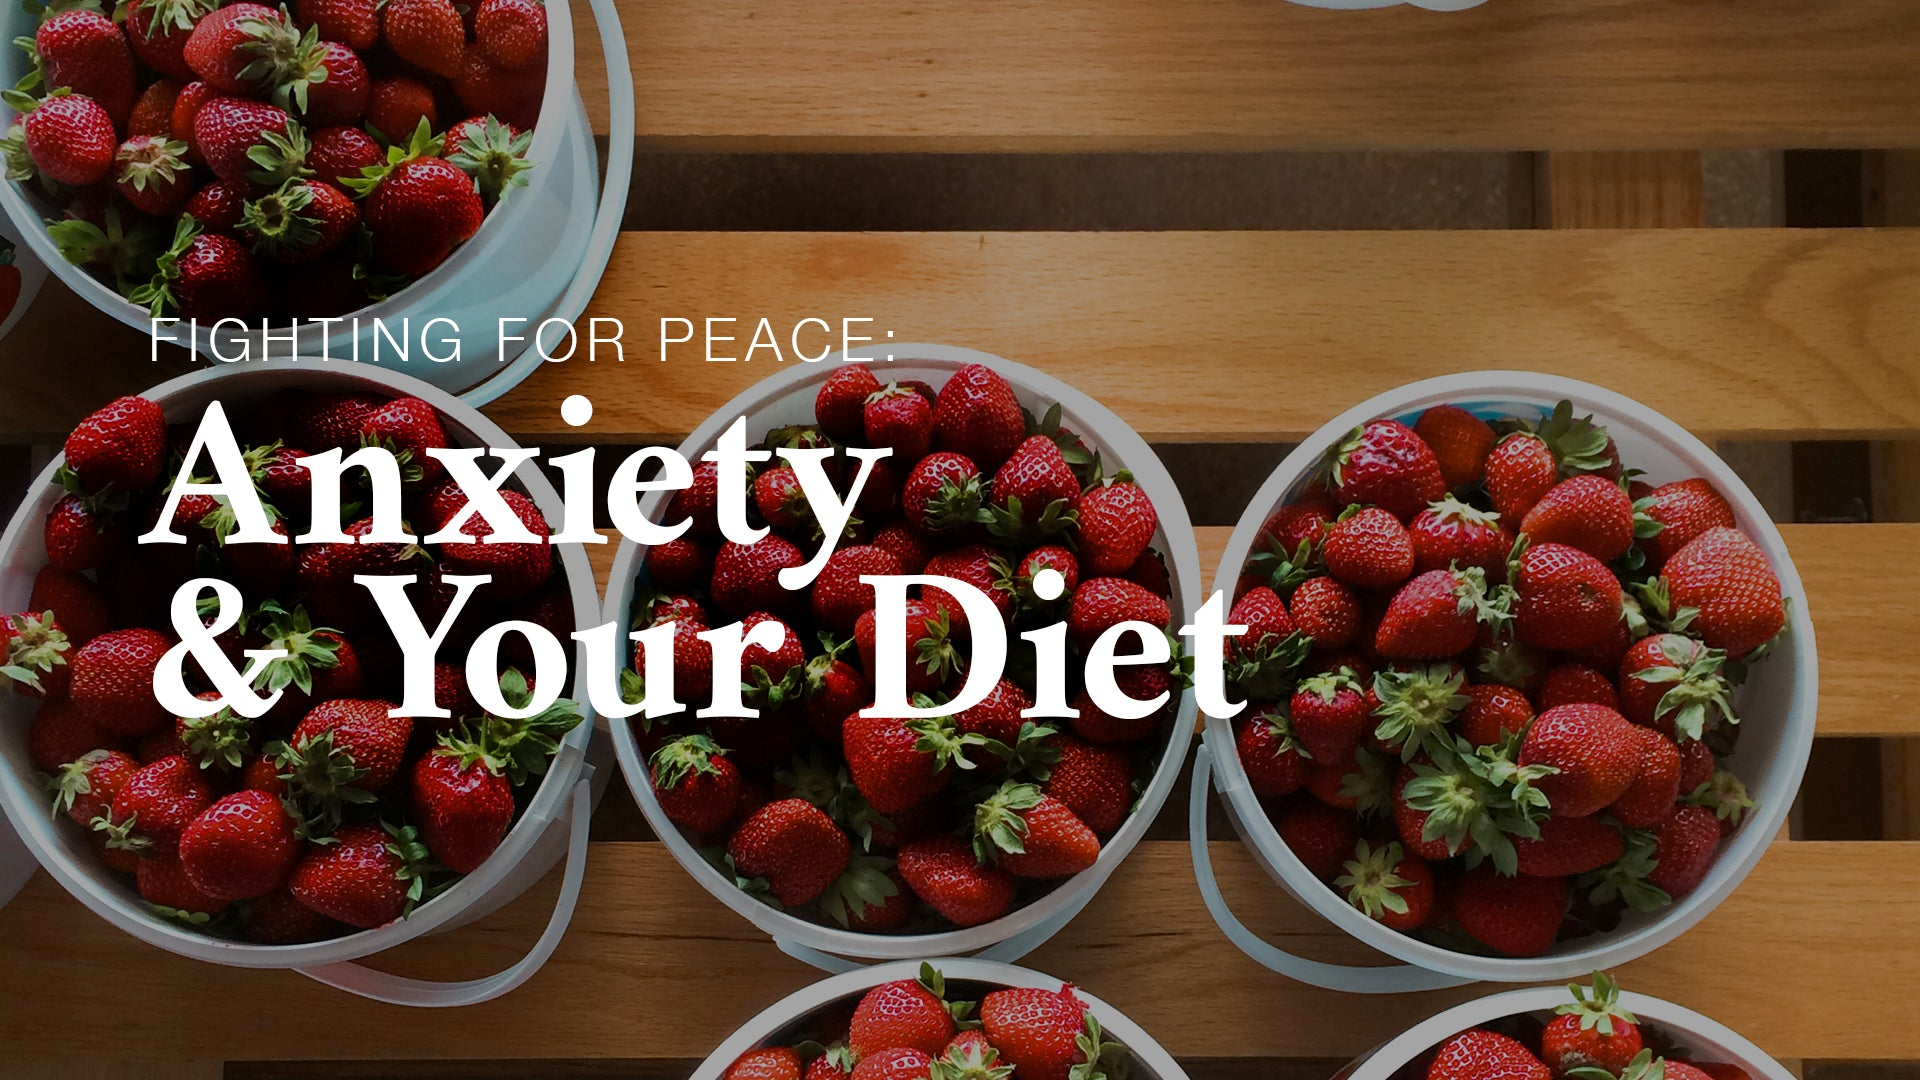 FFP: Anxiety and your Diet